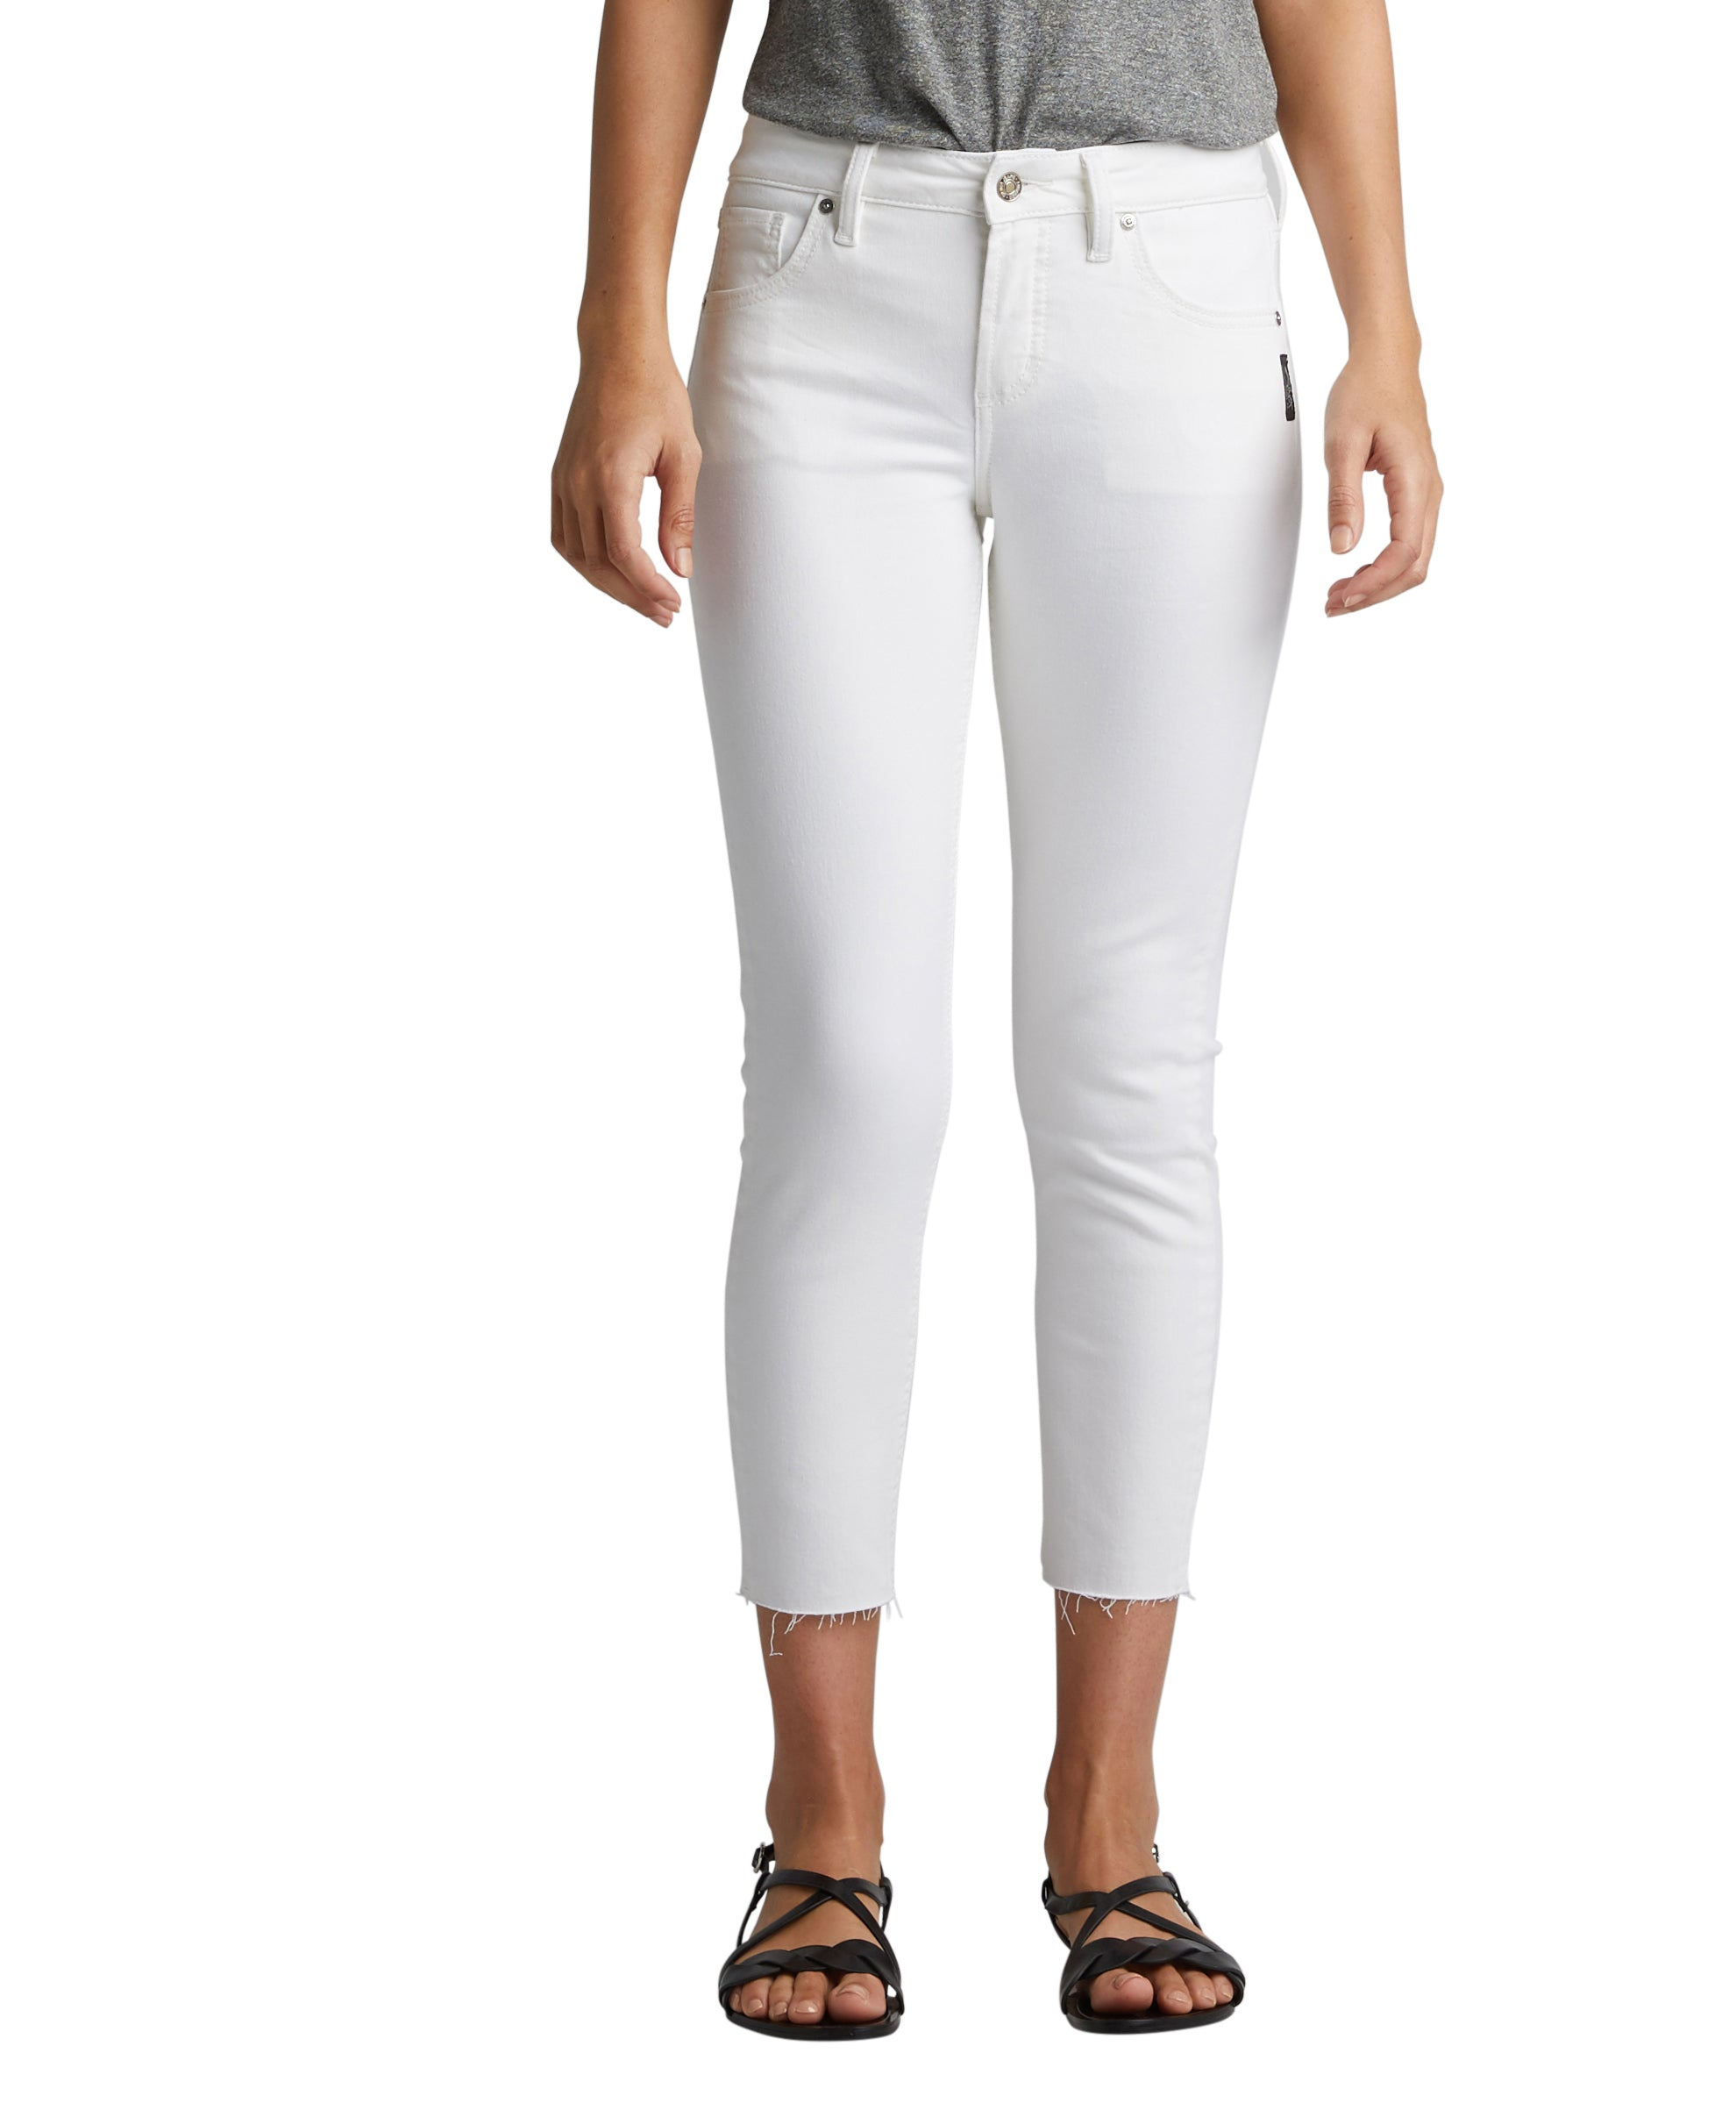 'Silver Jeans' Avery Skinny Crop - White